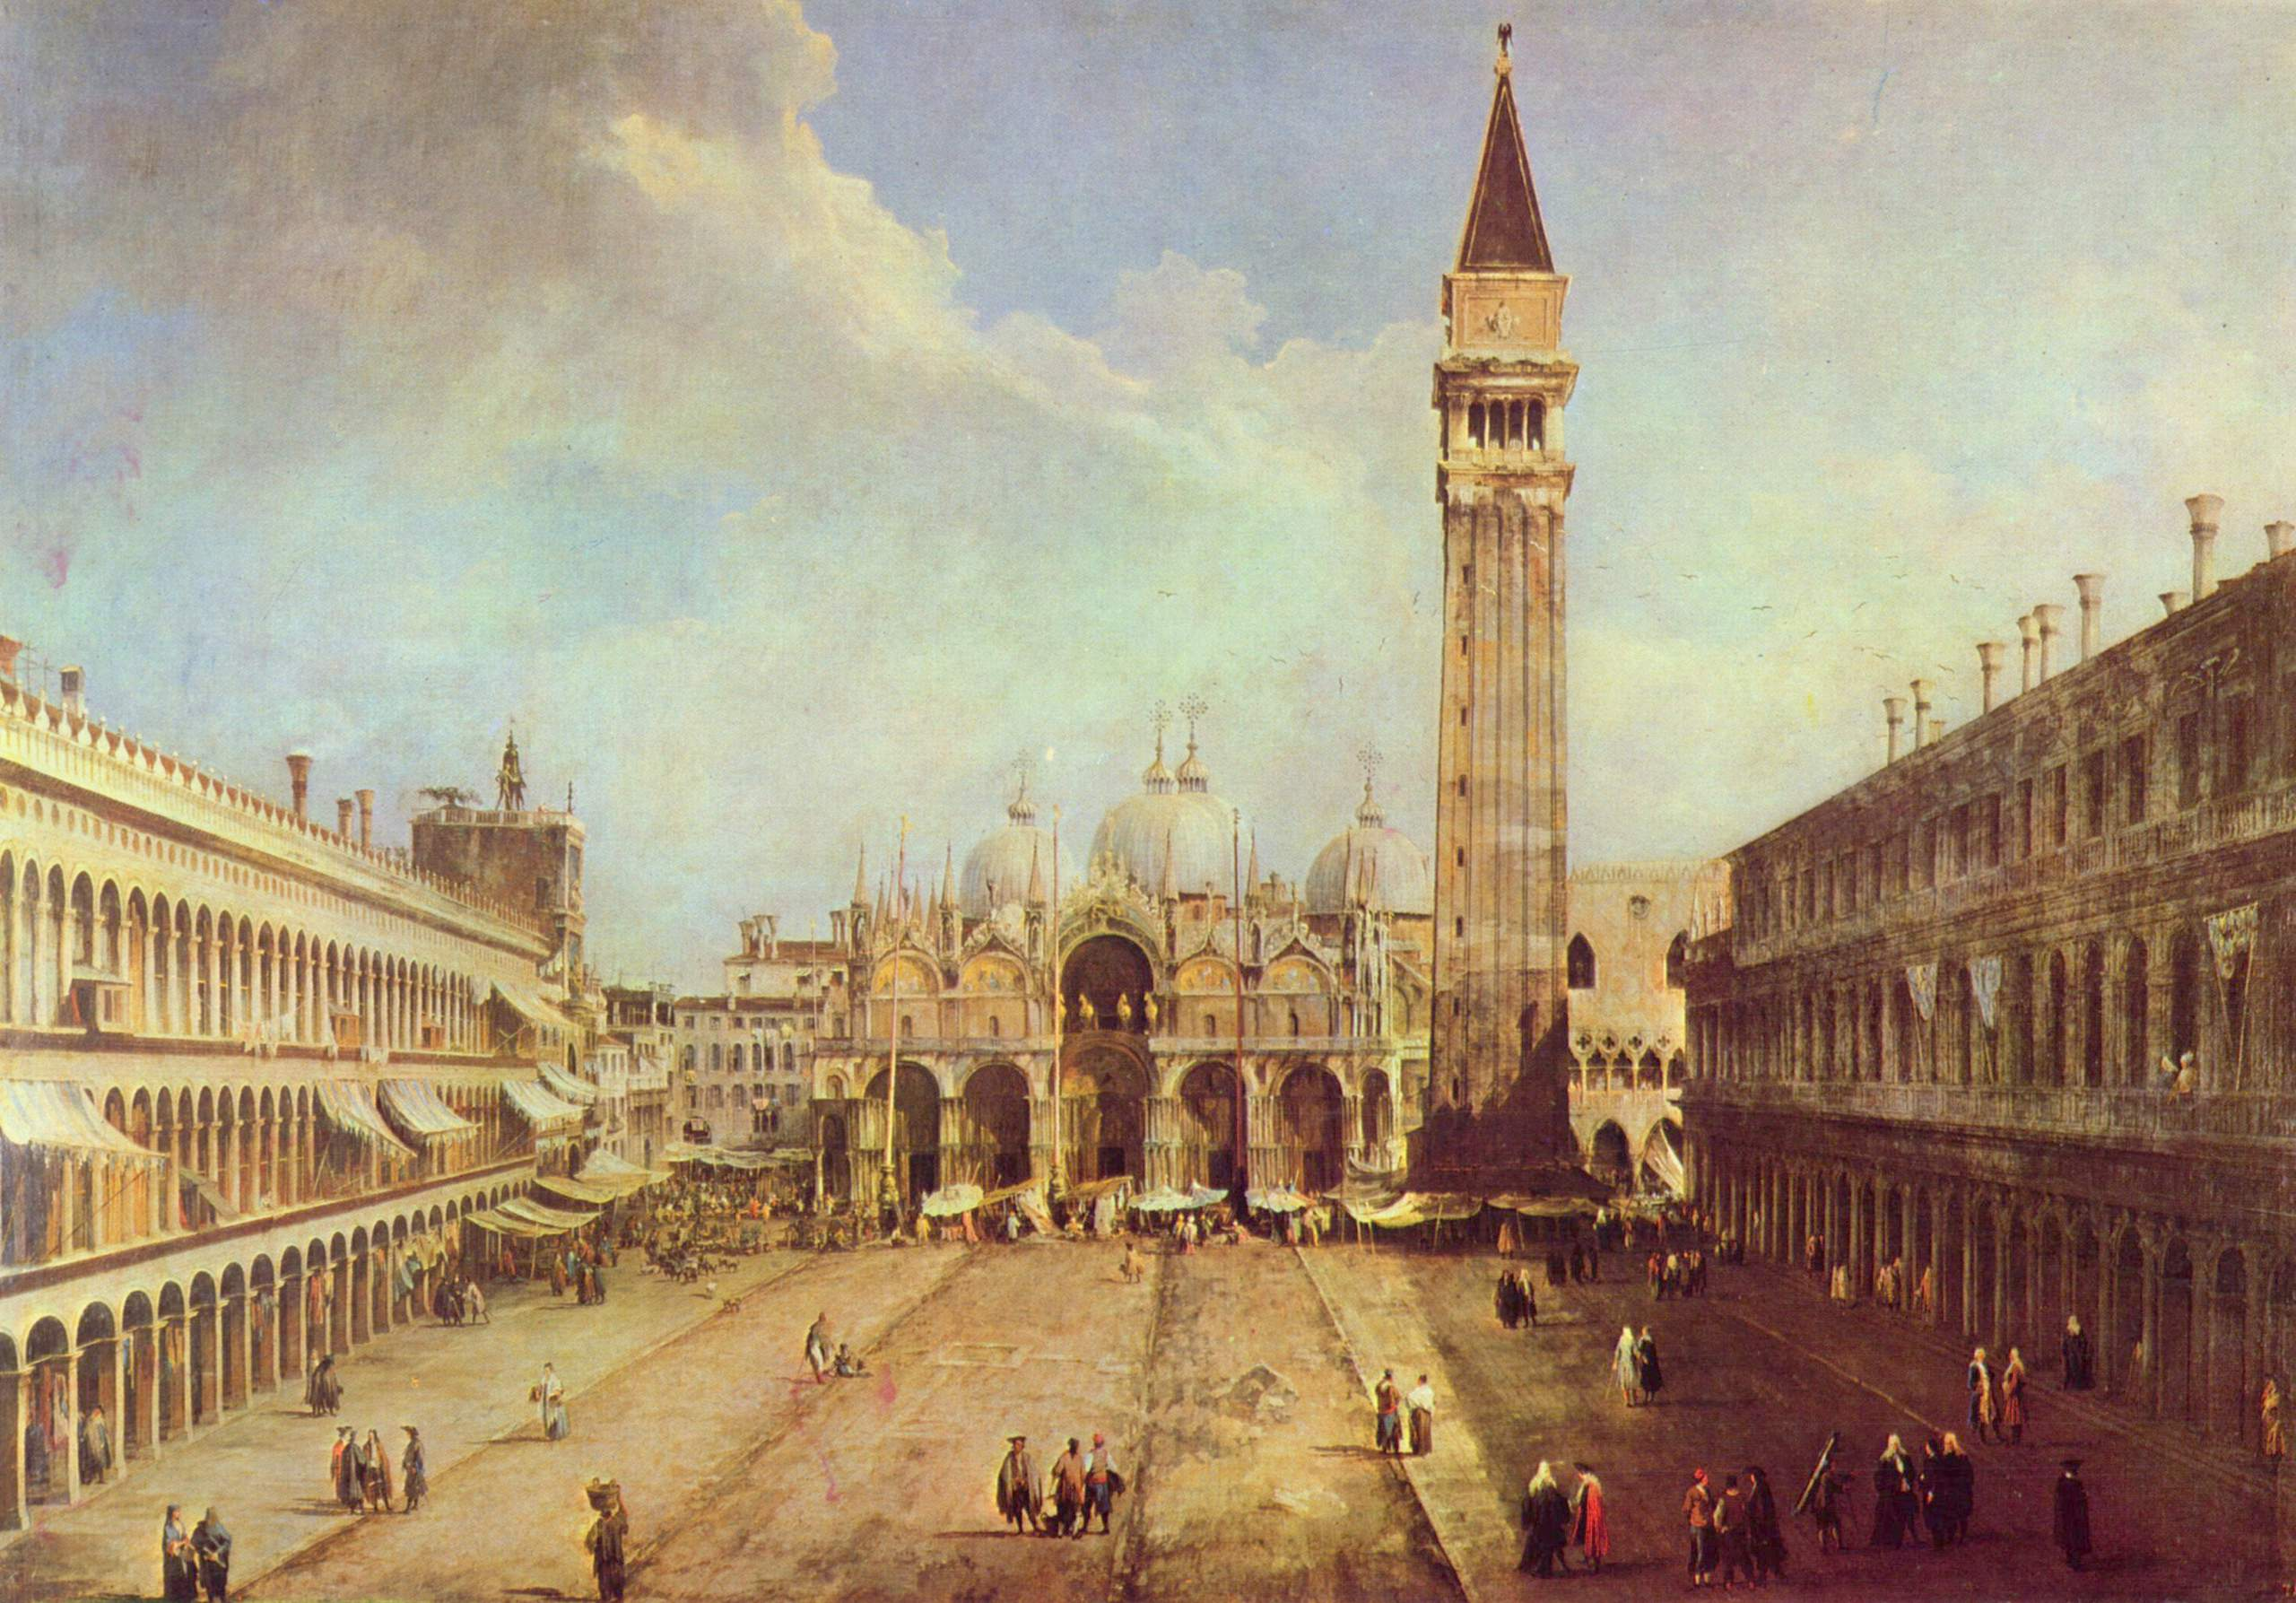 3. Piazza San Marco (1723-4)